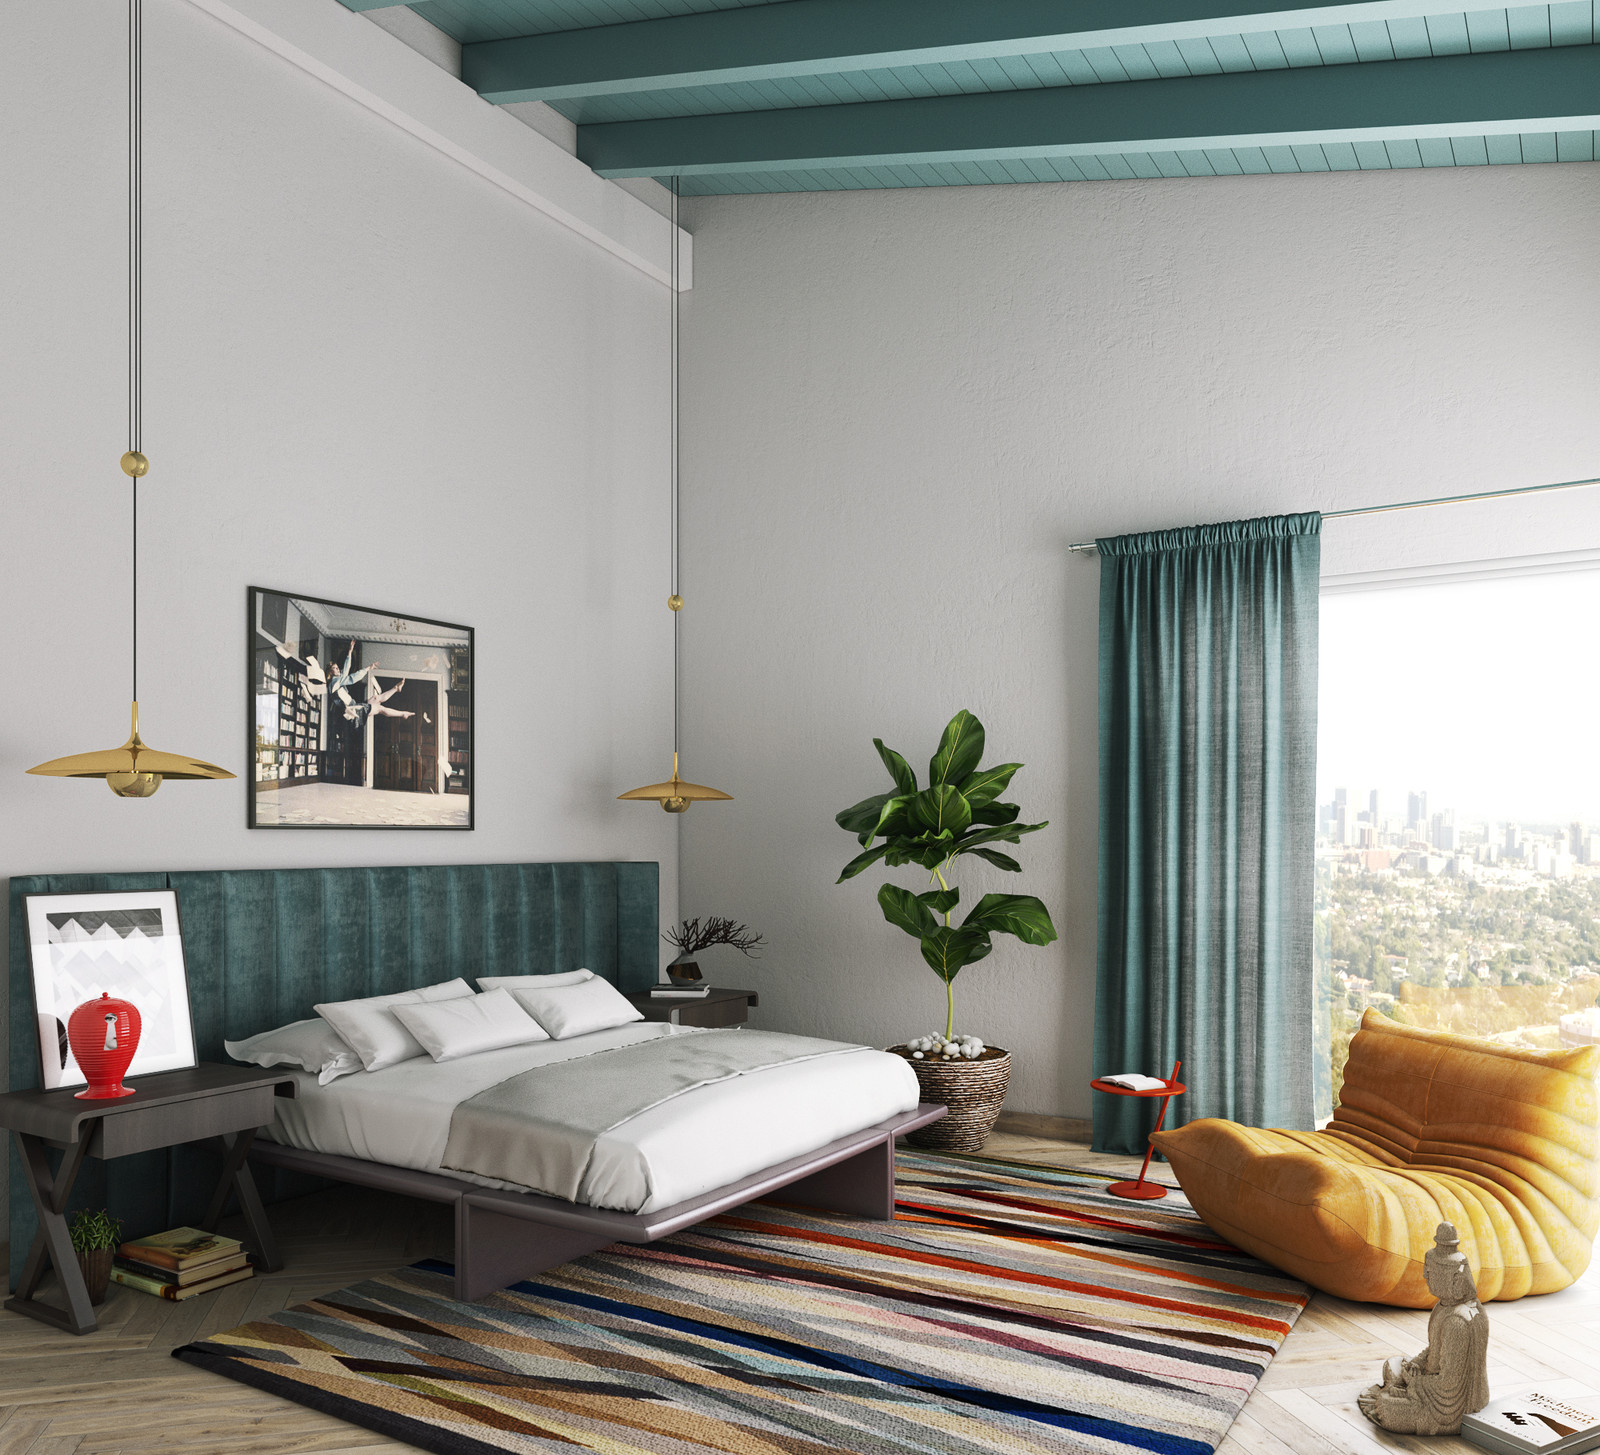 La Hills Master Bedroom - Premium Interior Design Services -